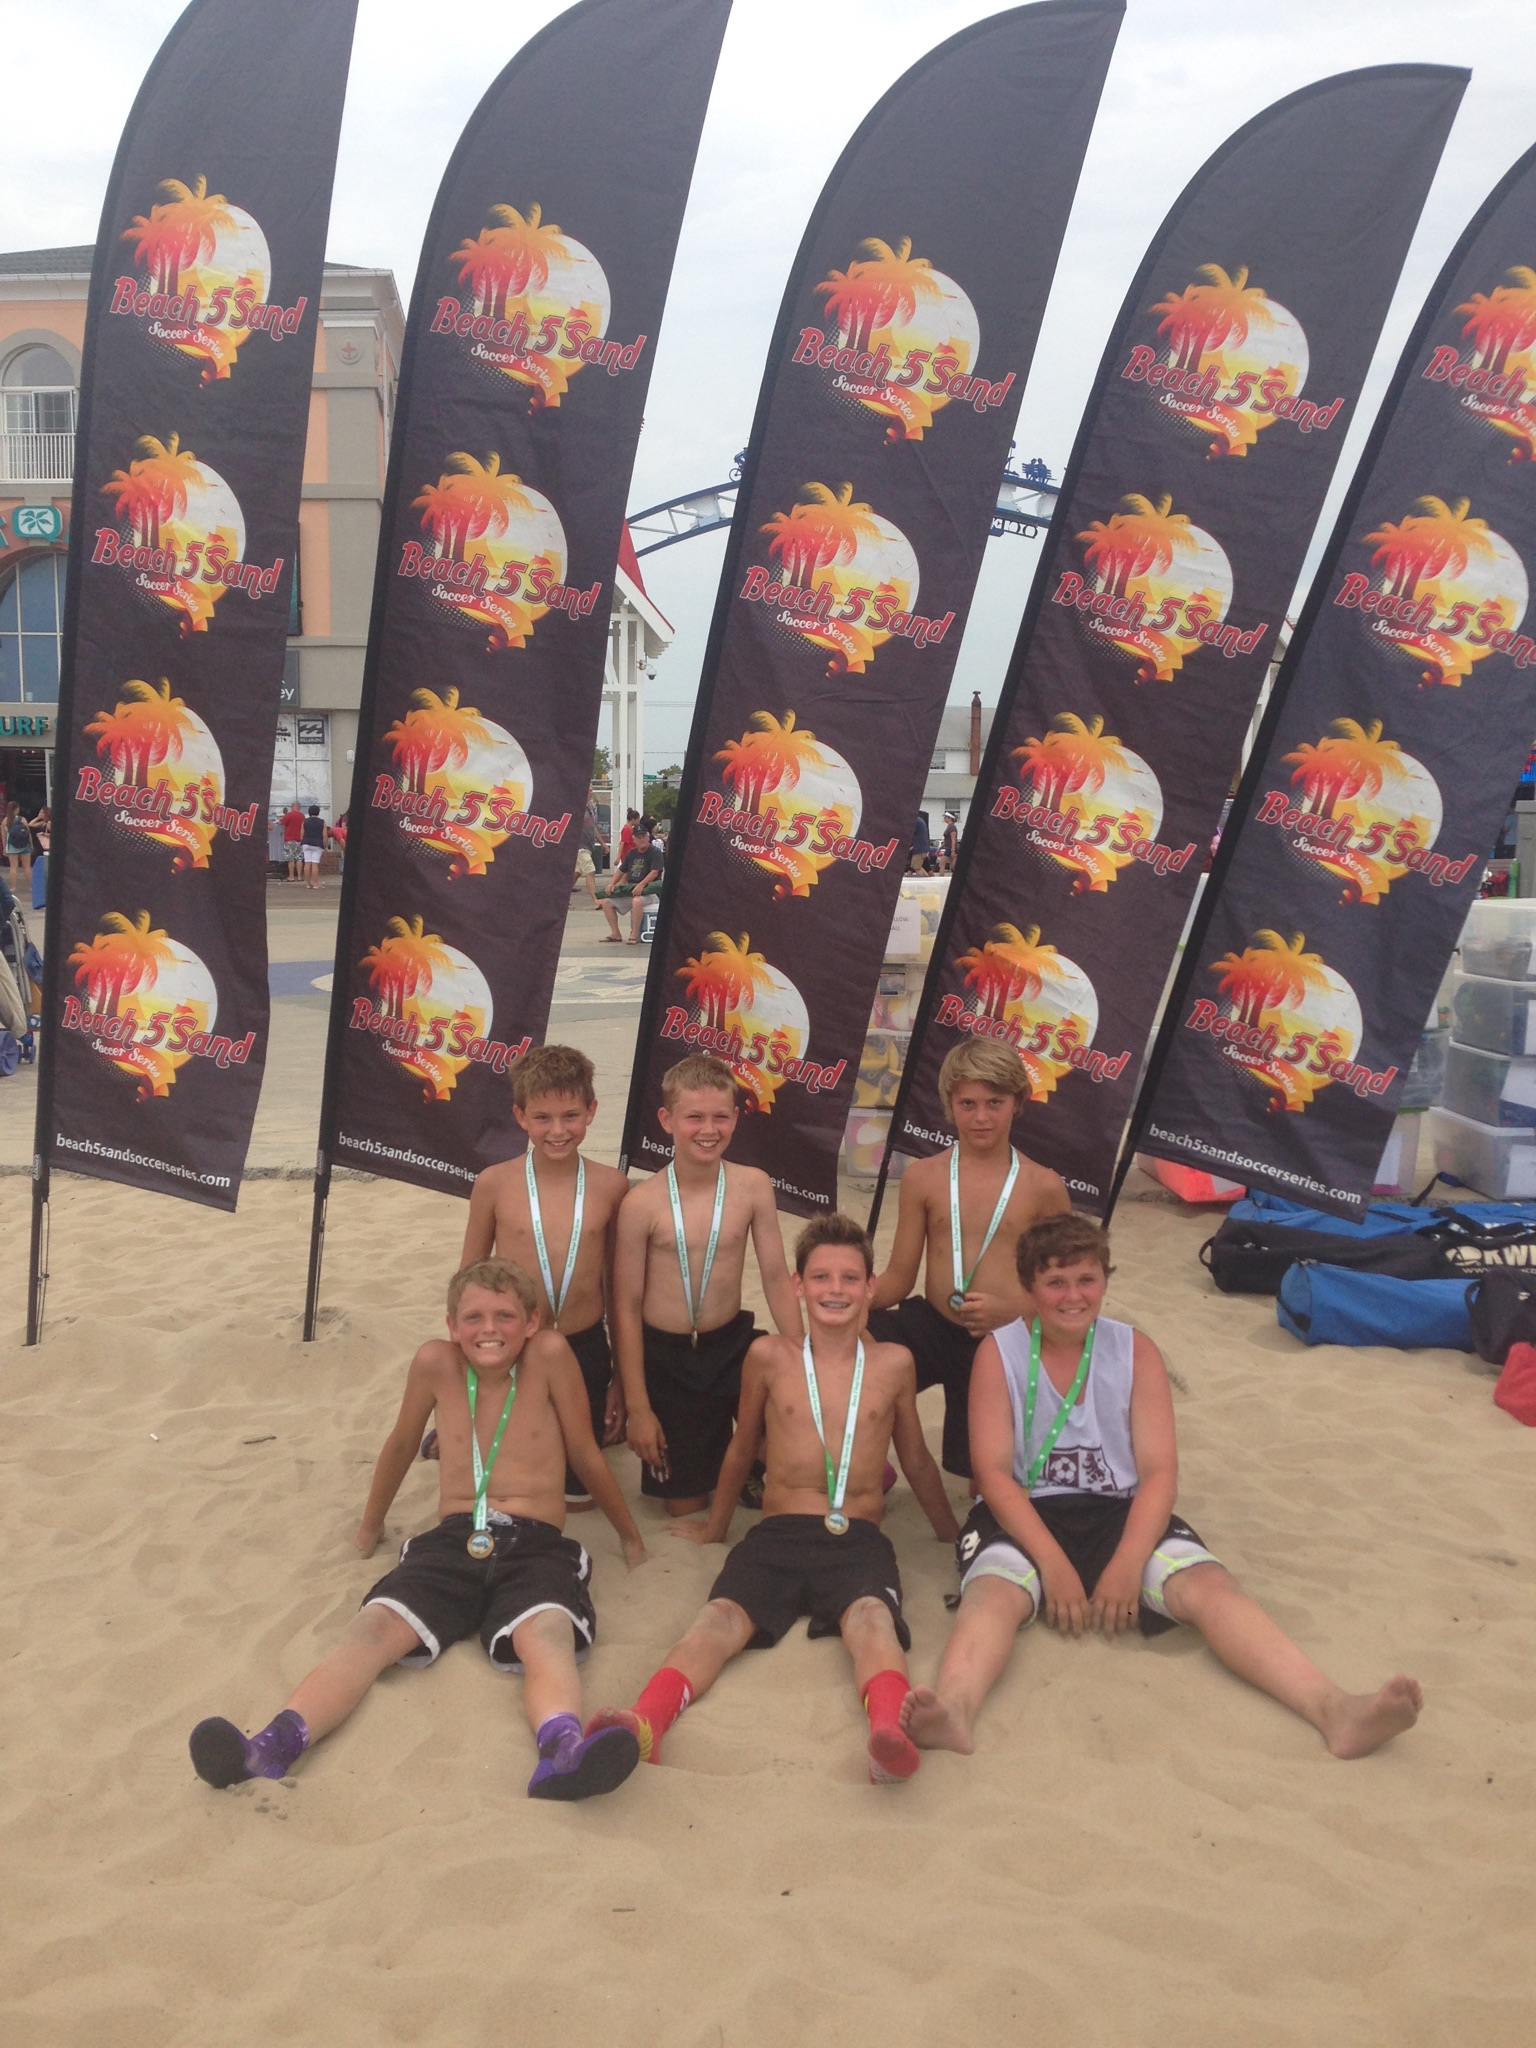 BU11:12 BEACH OUTLAWS